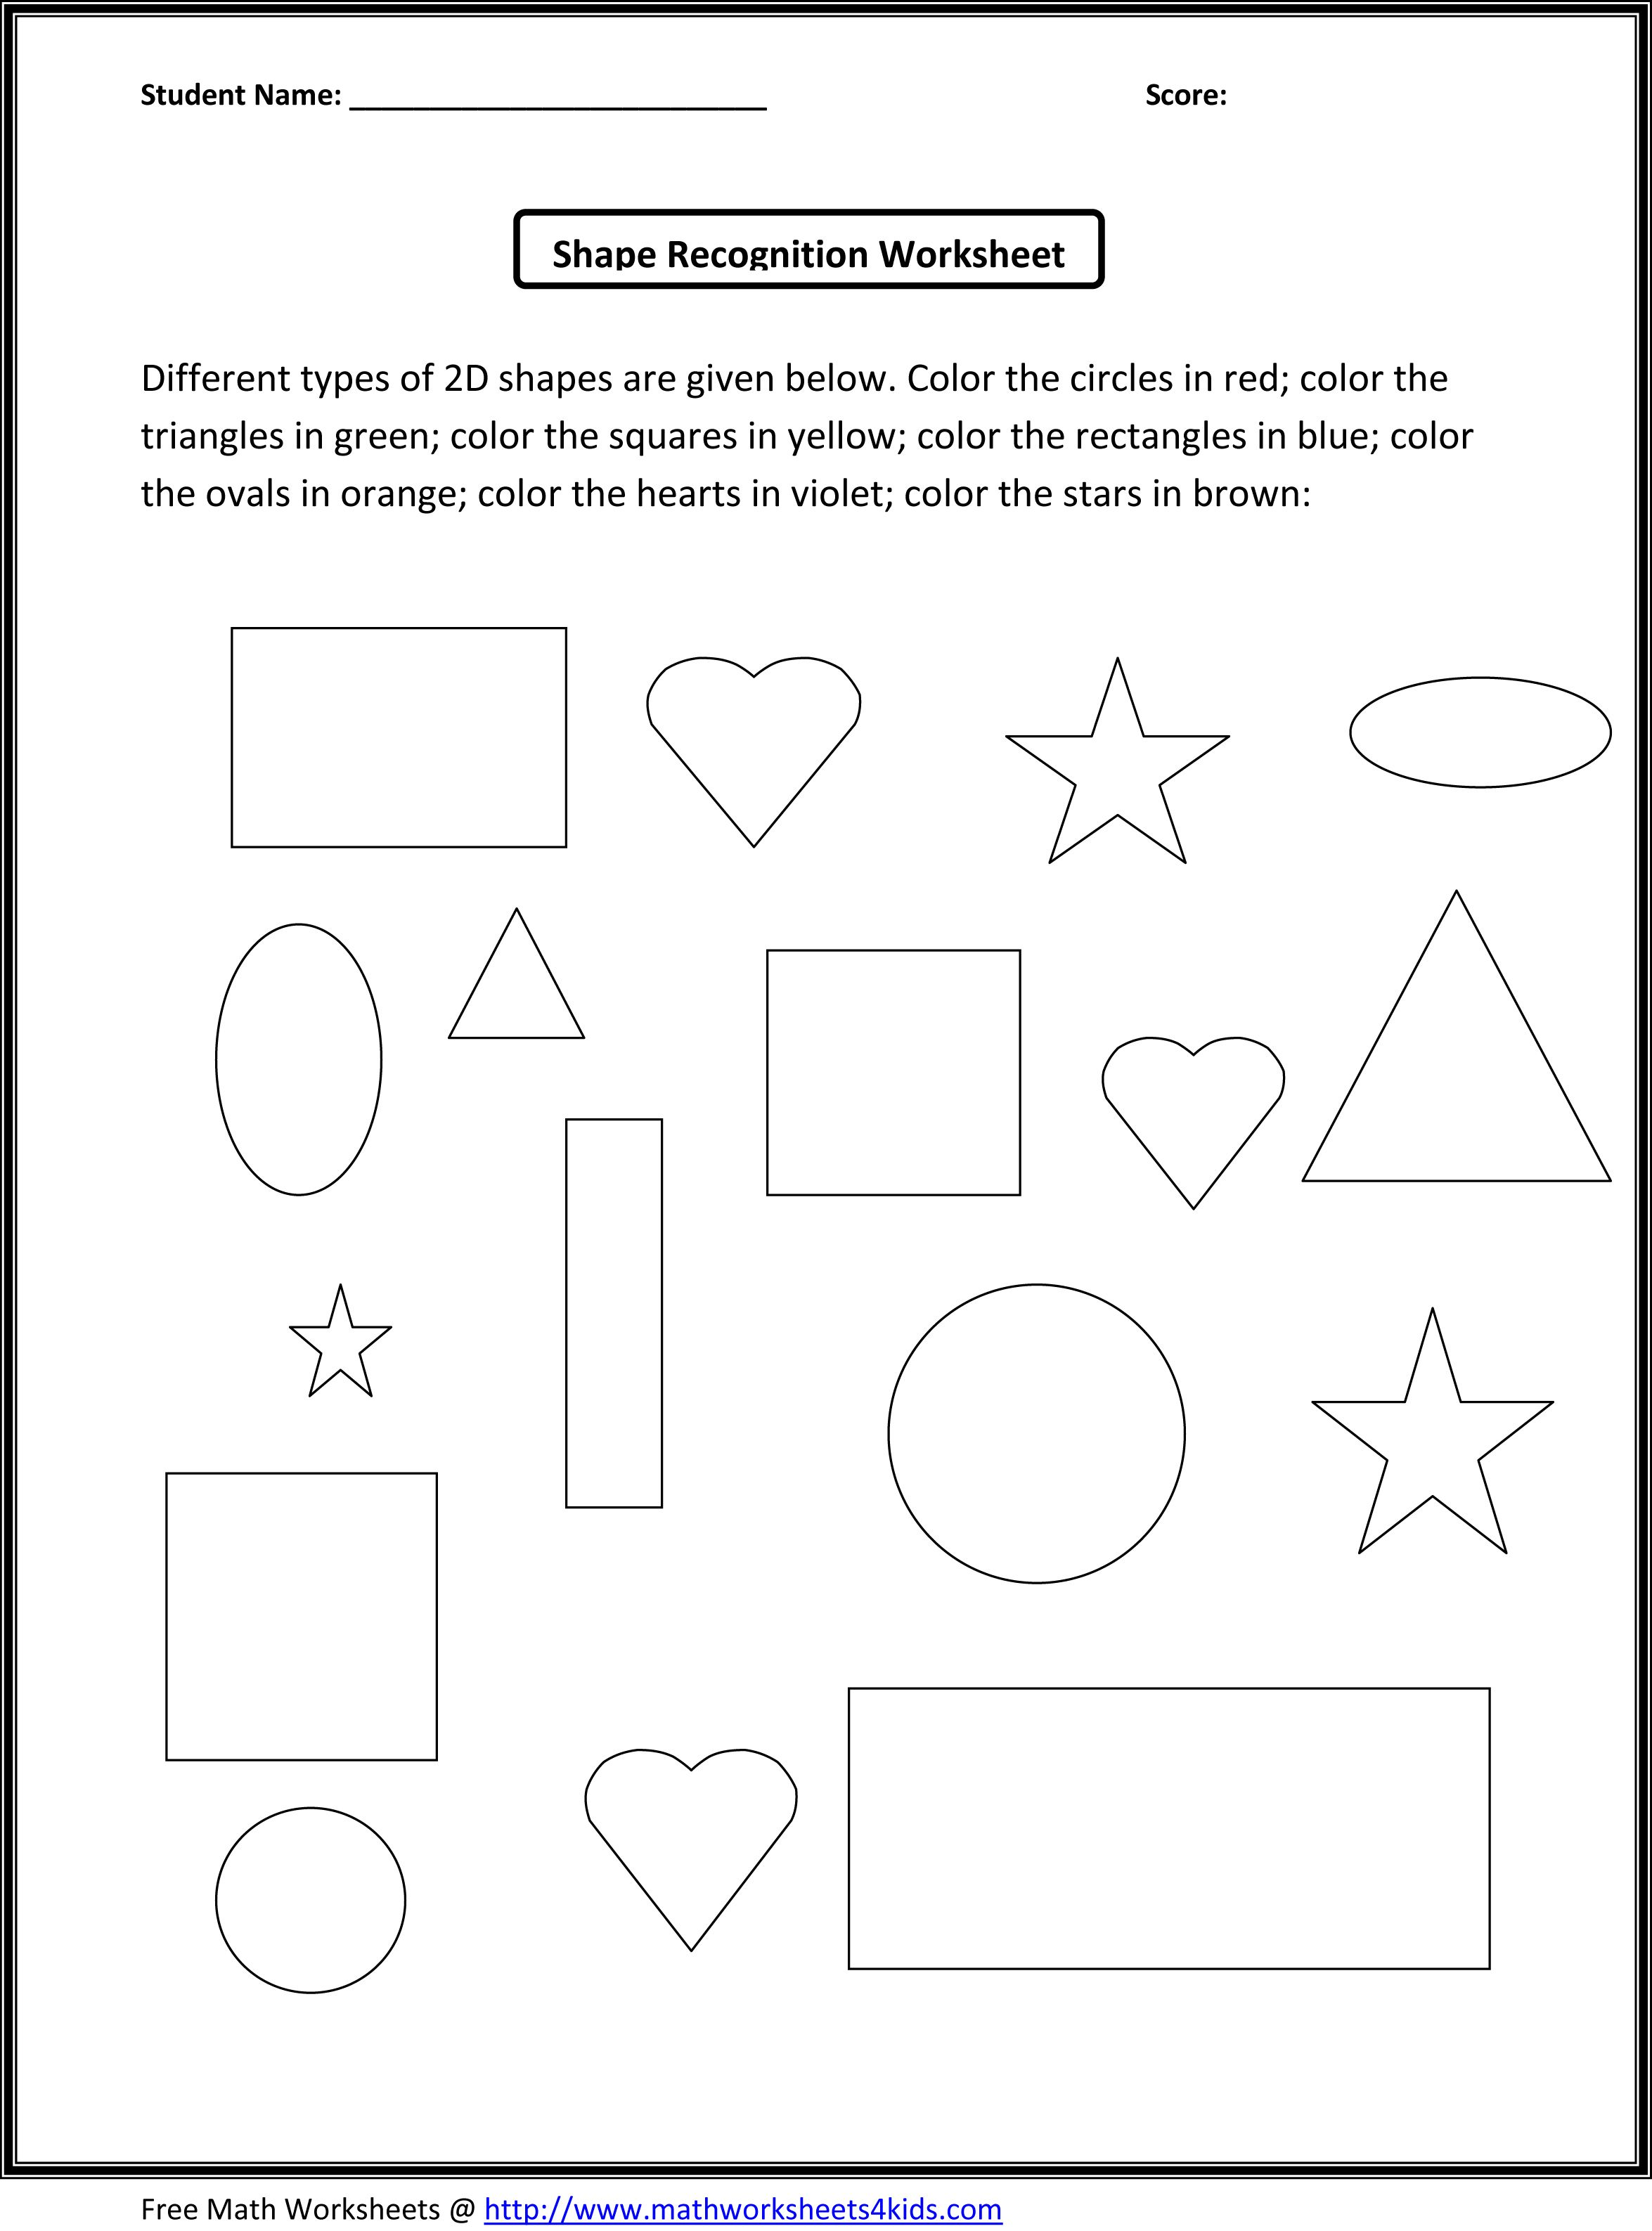 Pin By Marie Martin On Teaching The Girls | Kindergarten Worksheets